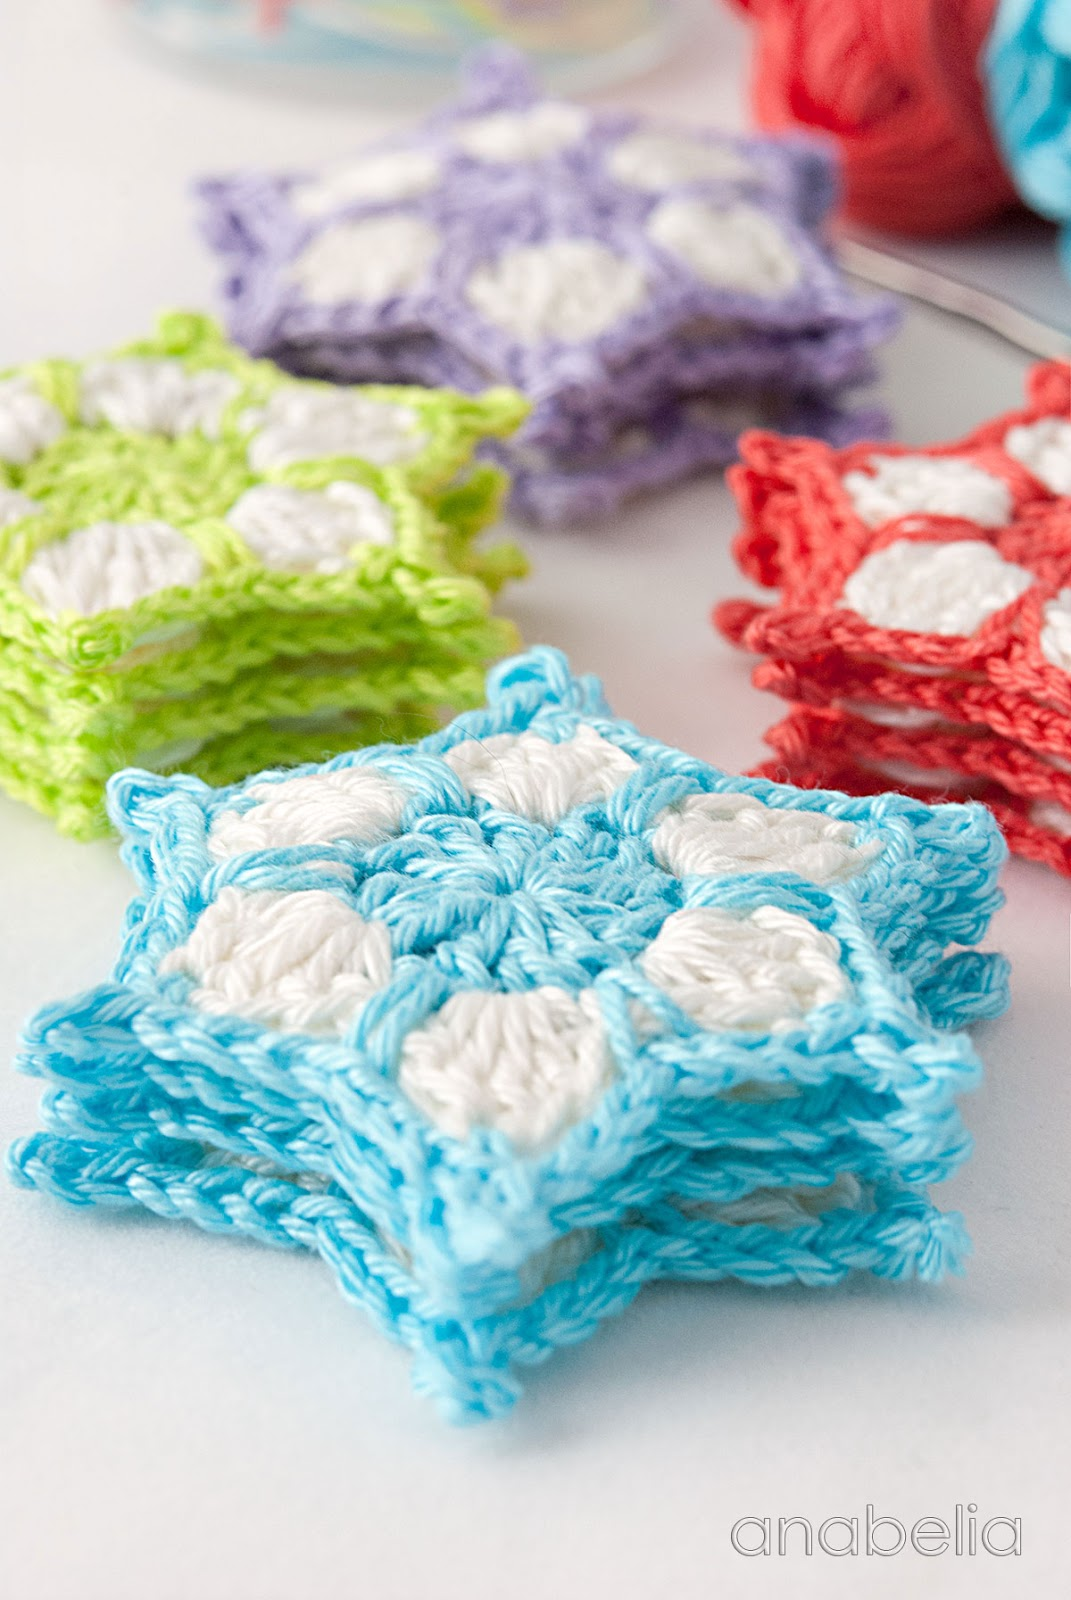 Anabelia craft design: DIY: How to make a crochet stars ...